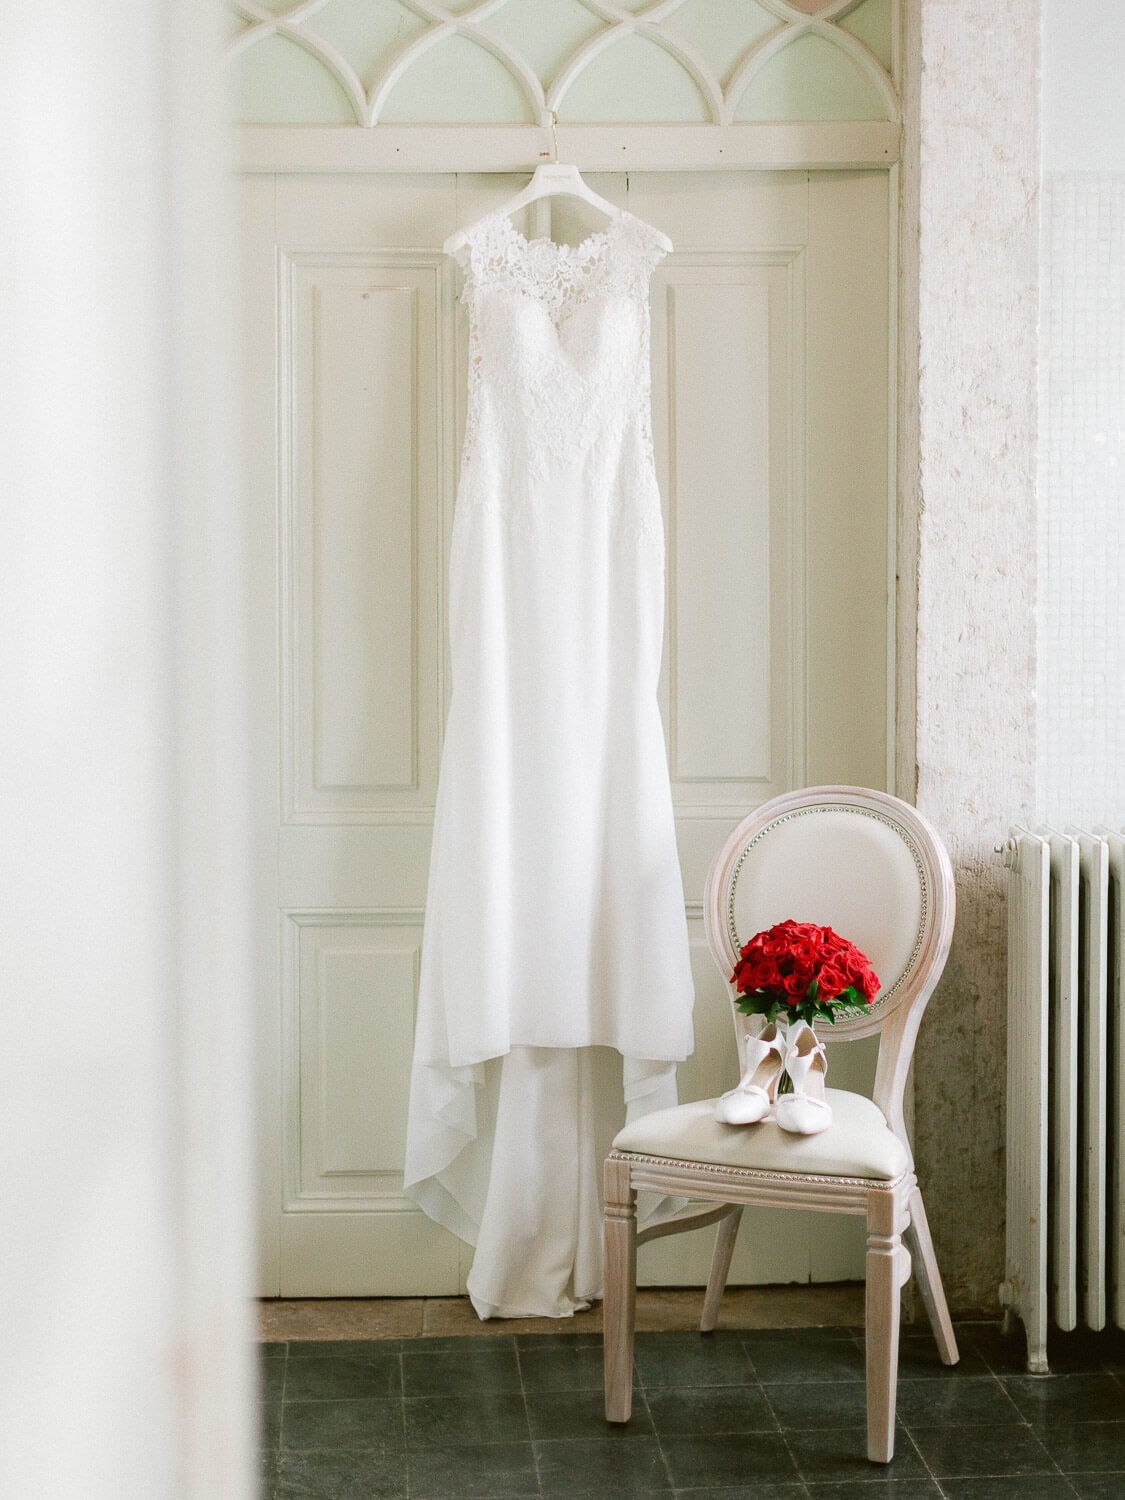 hanging wedding dress, chair with bridal sandals and red roses bouquet by Portugal Wedding Photographer